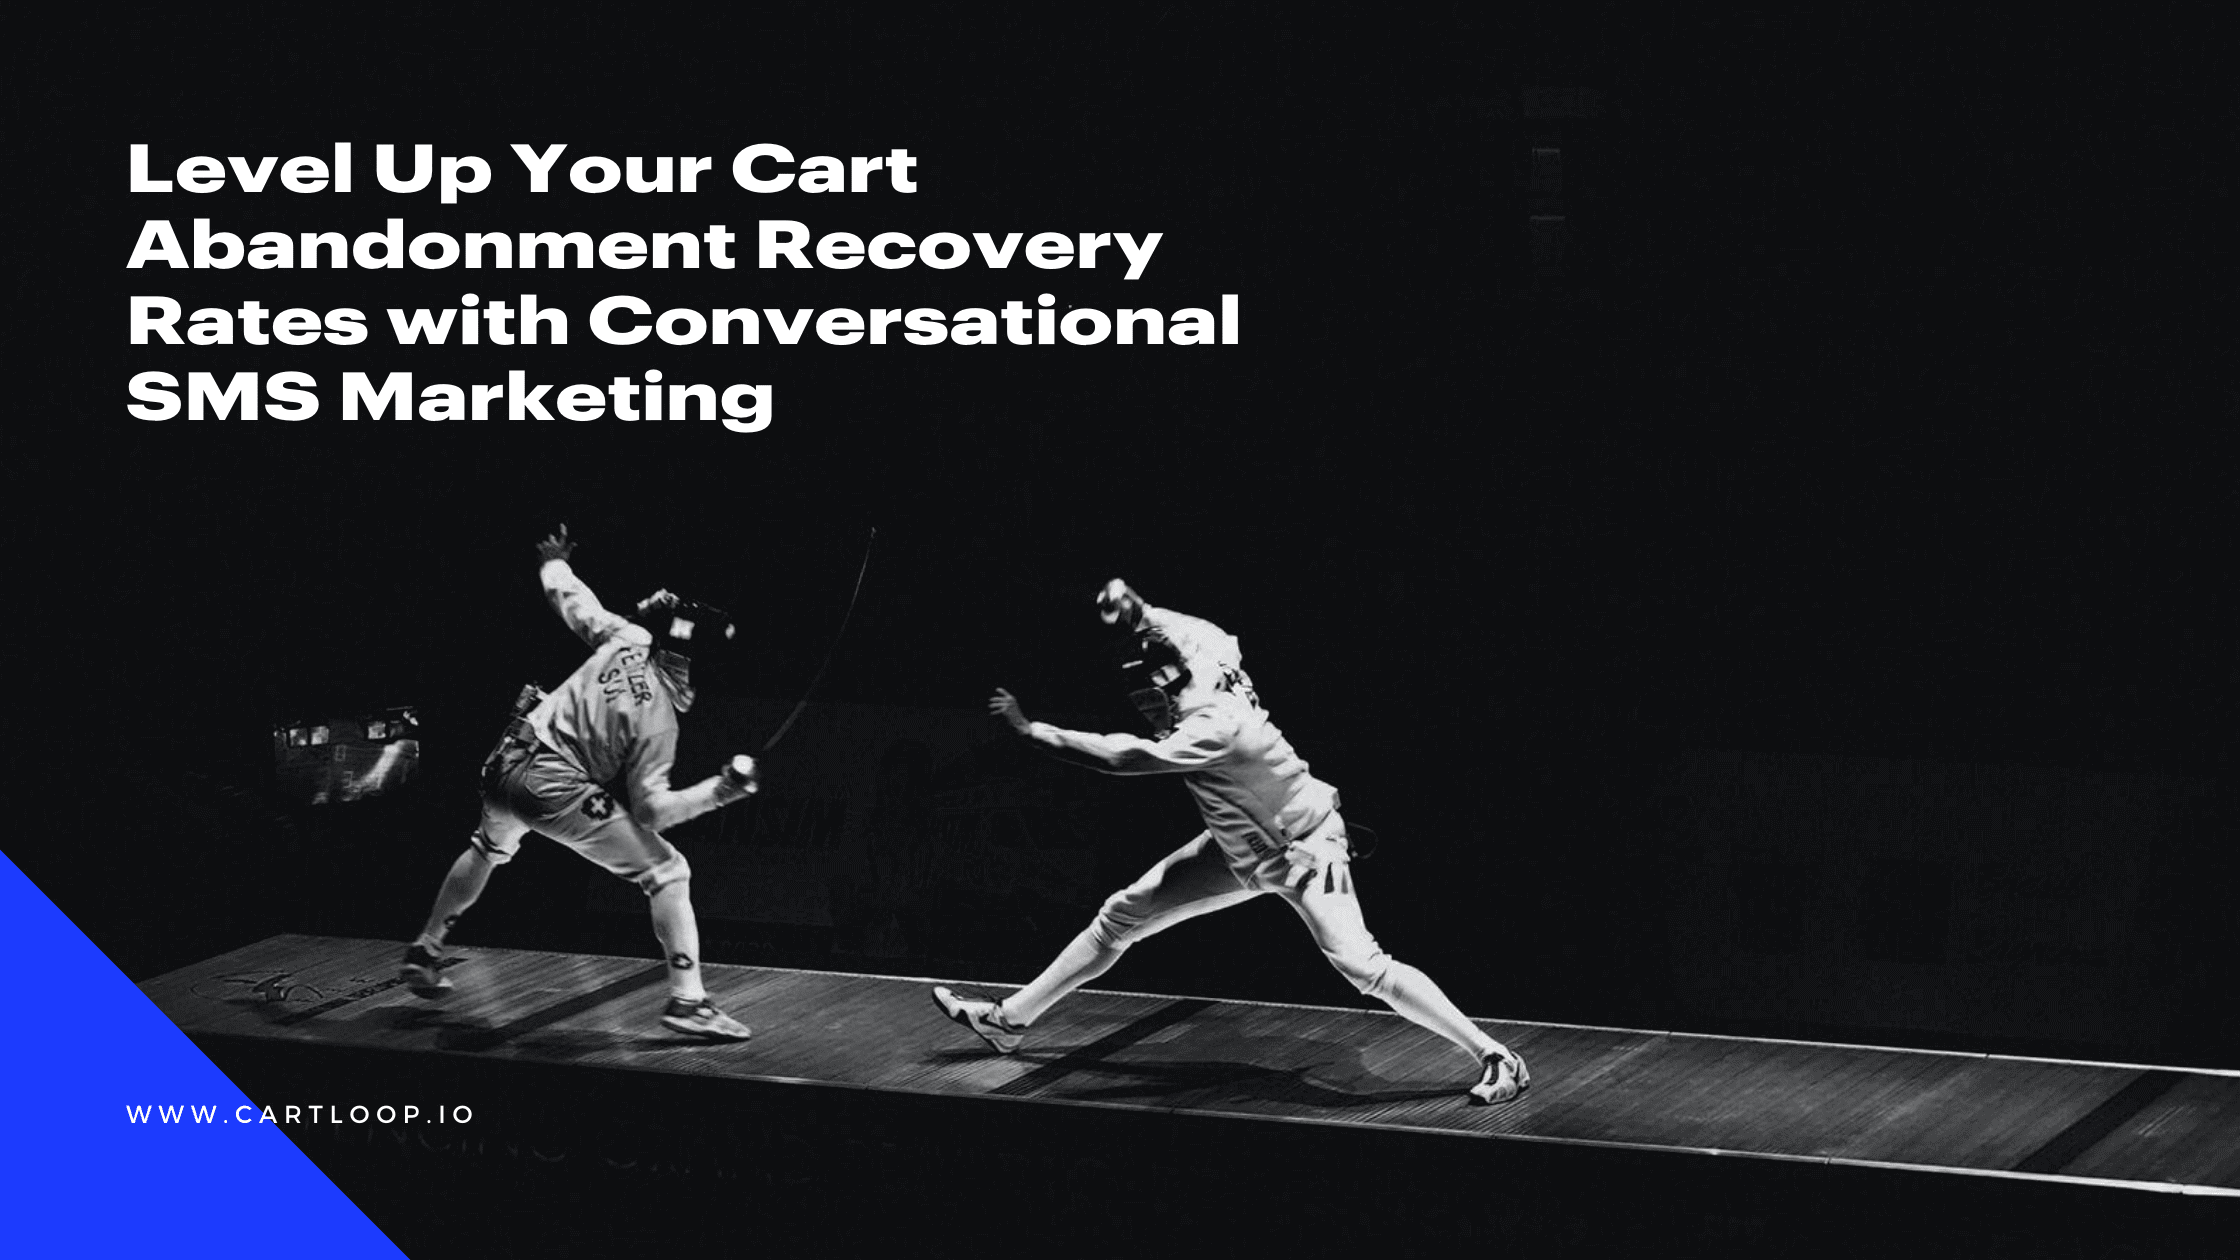 Shopping Cart Abandonment Recovery:  Email Marketing Vs Conversational SMS, Who Wins?